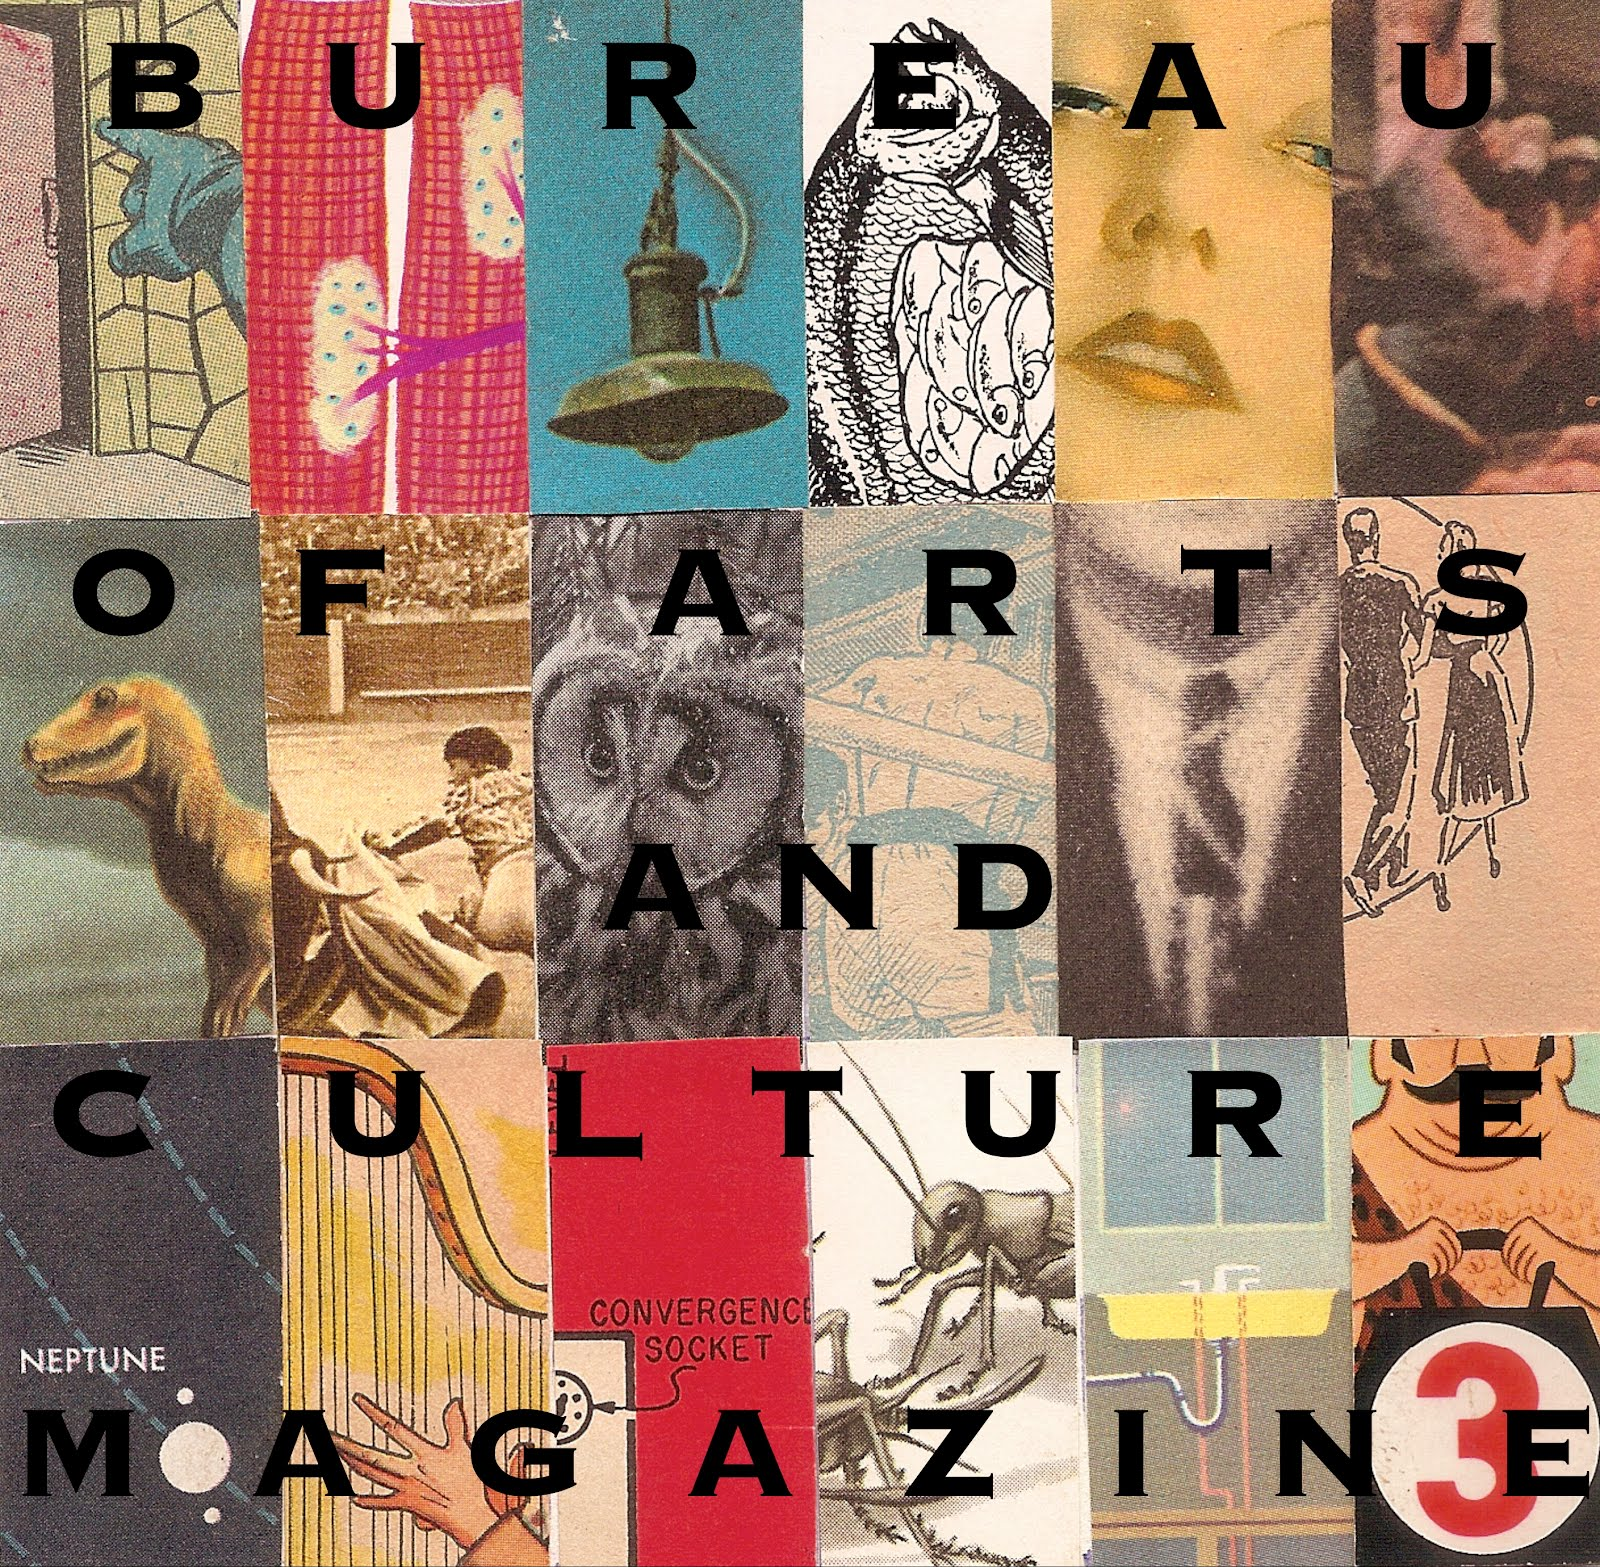 BUREAU MAGAZINE ADVERTISING